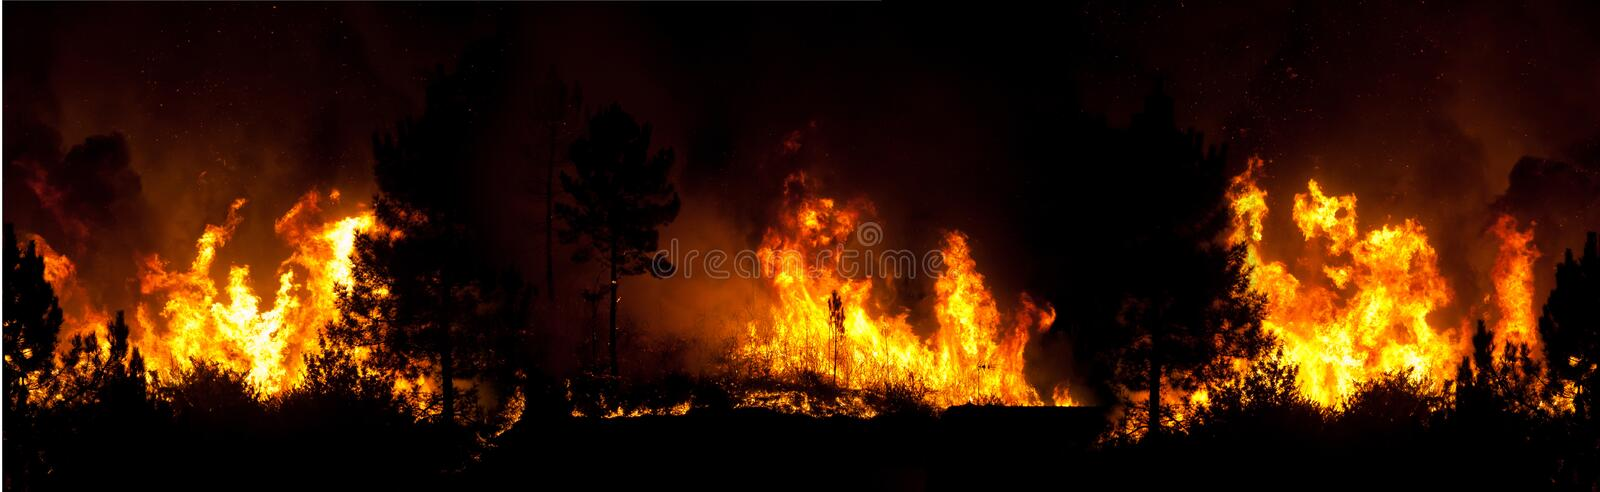 Panoramic Fire with 3 Photos. Panoramic Background Fire with 3 Photos royalty free stock images